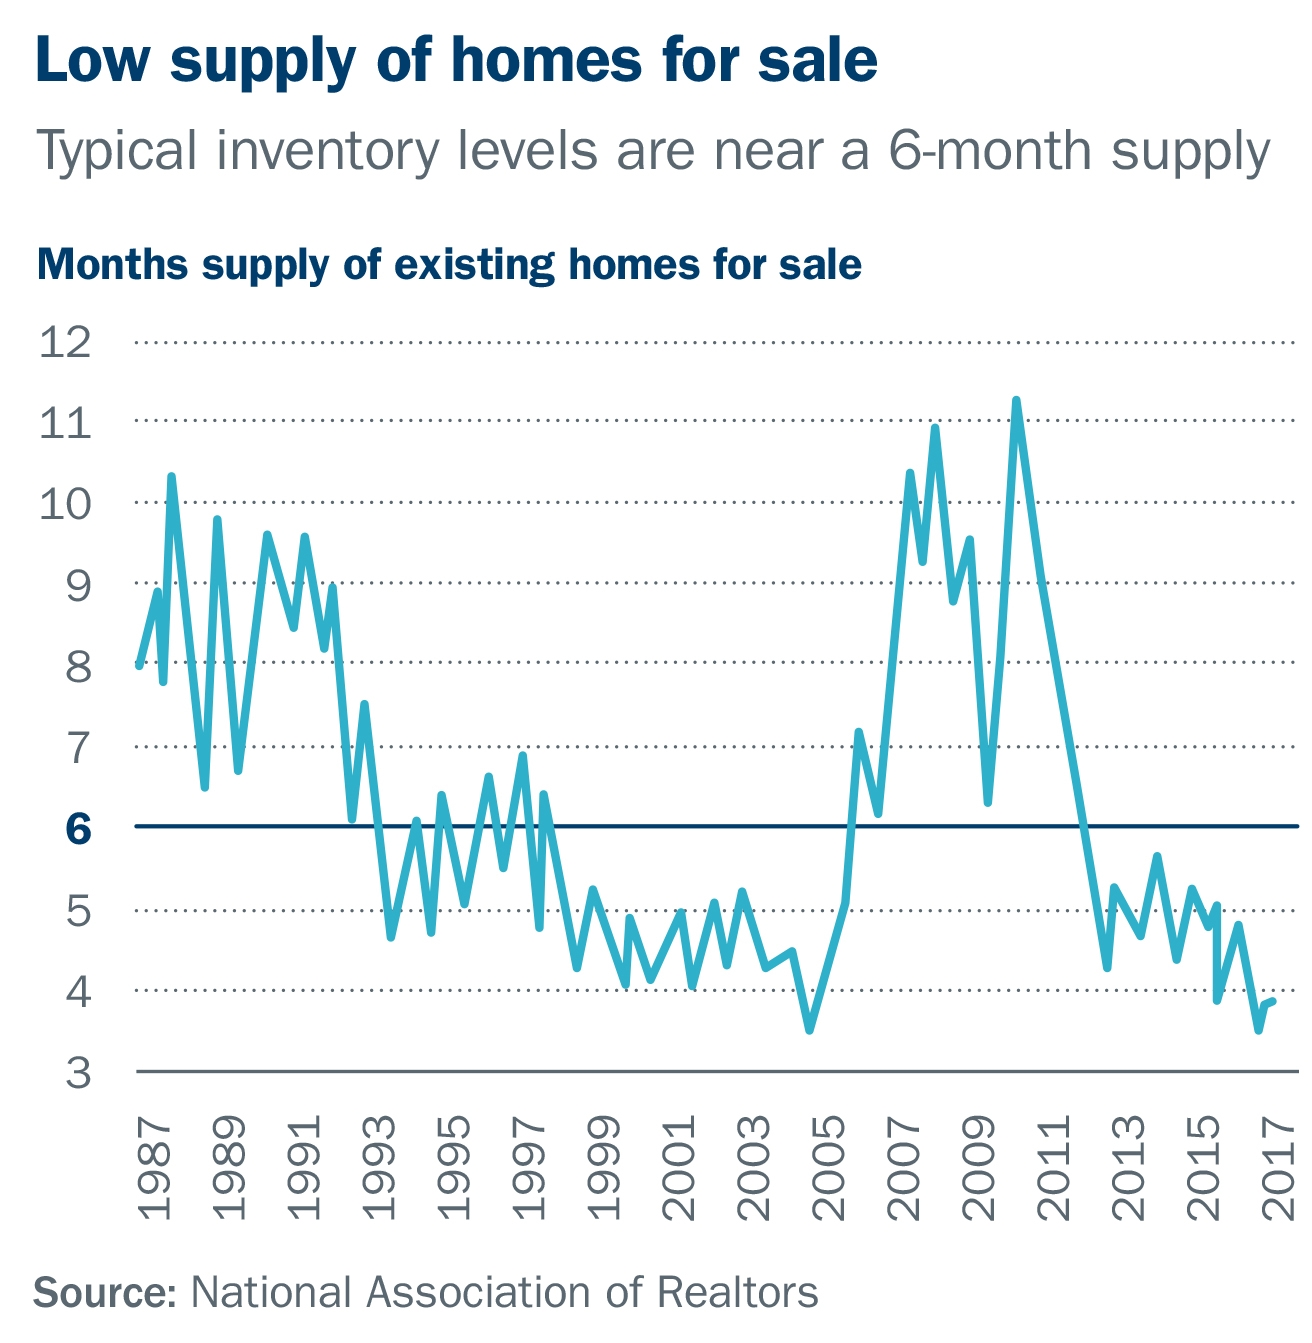 Low supply of homes for sale